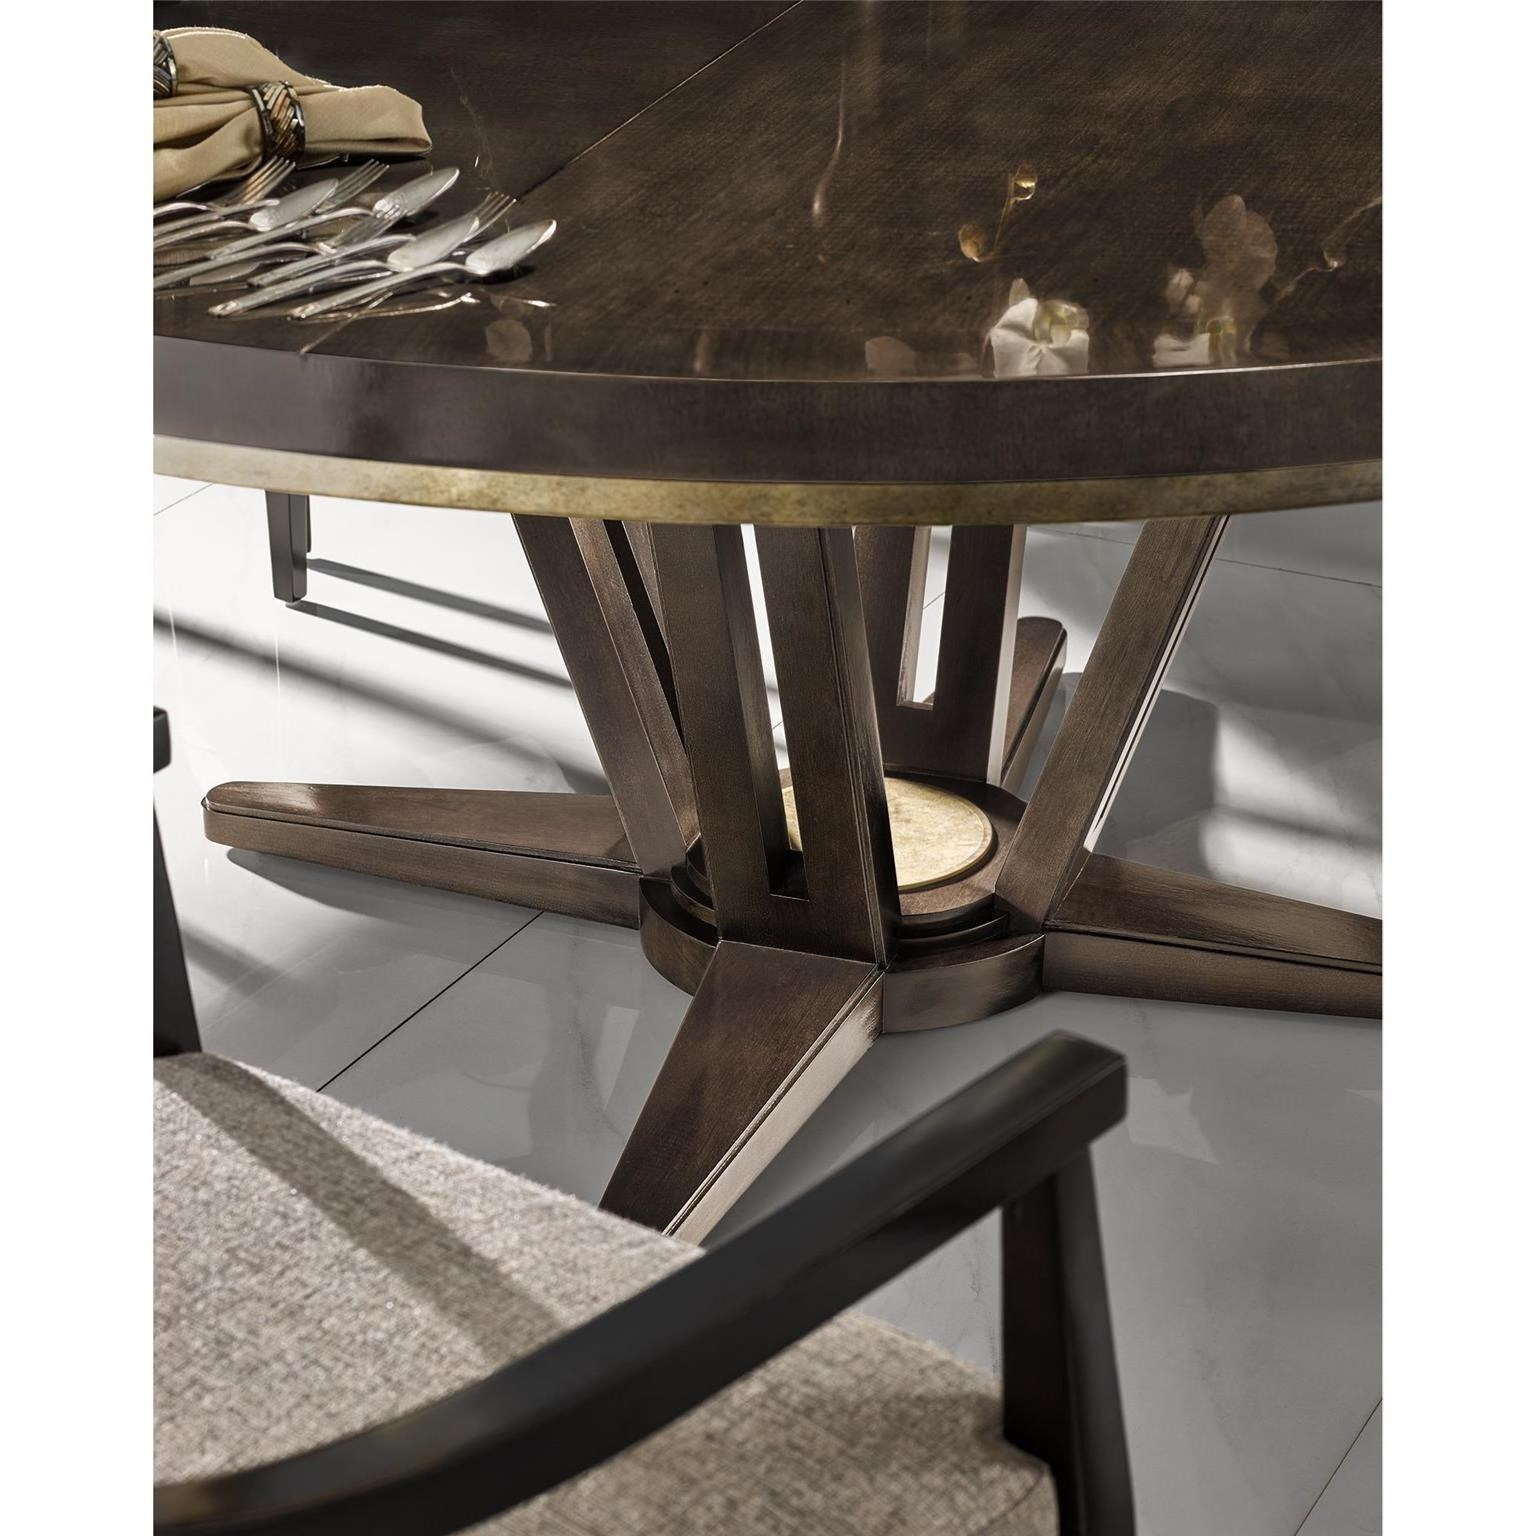 Upscale Dining Room Furniture: Fine Furniture Design Deco 9 Piece Dining Set With Round